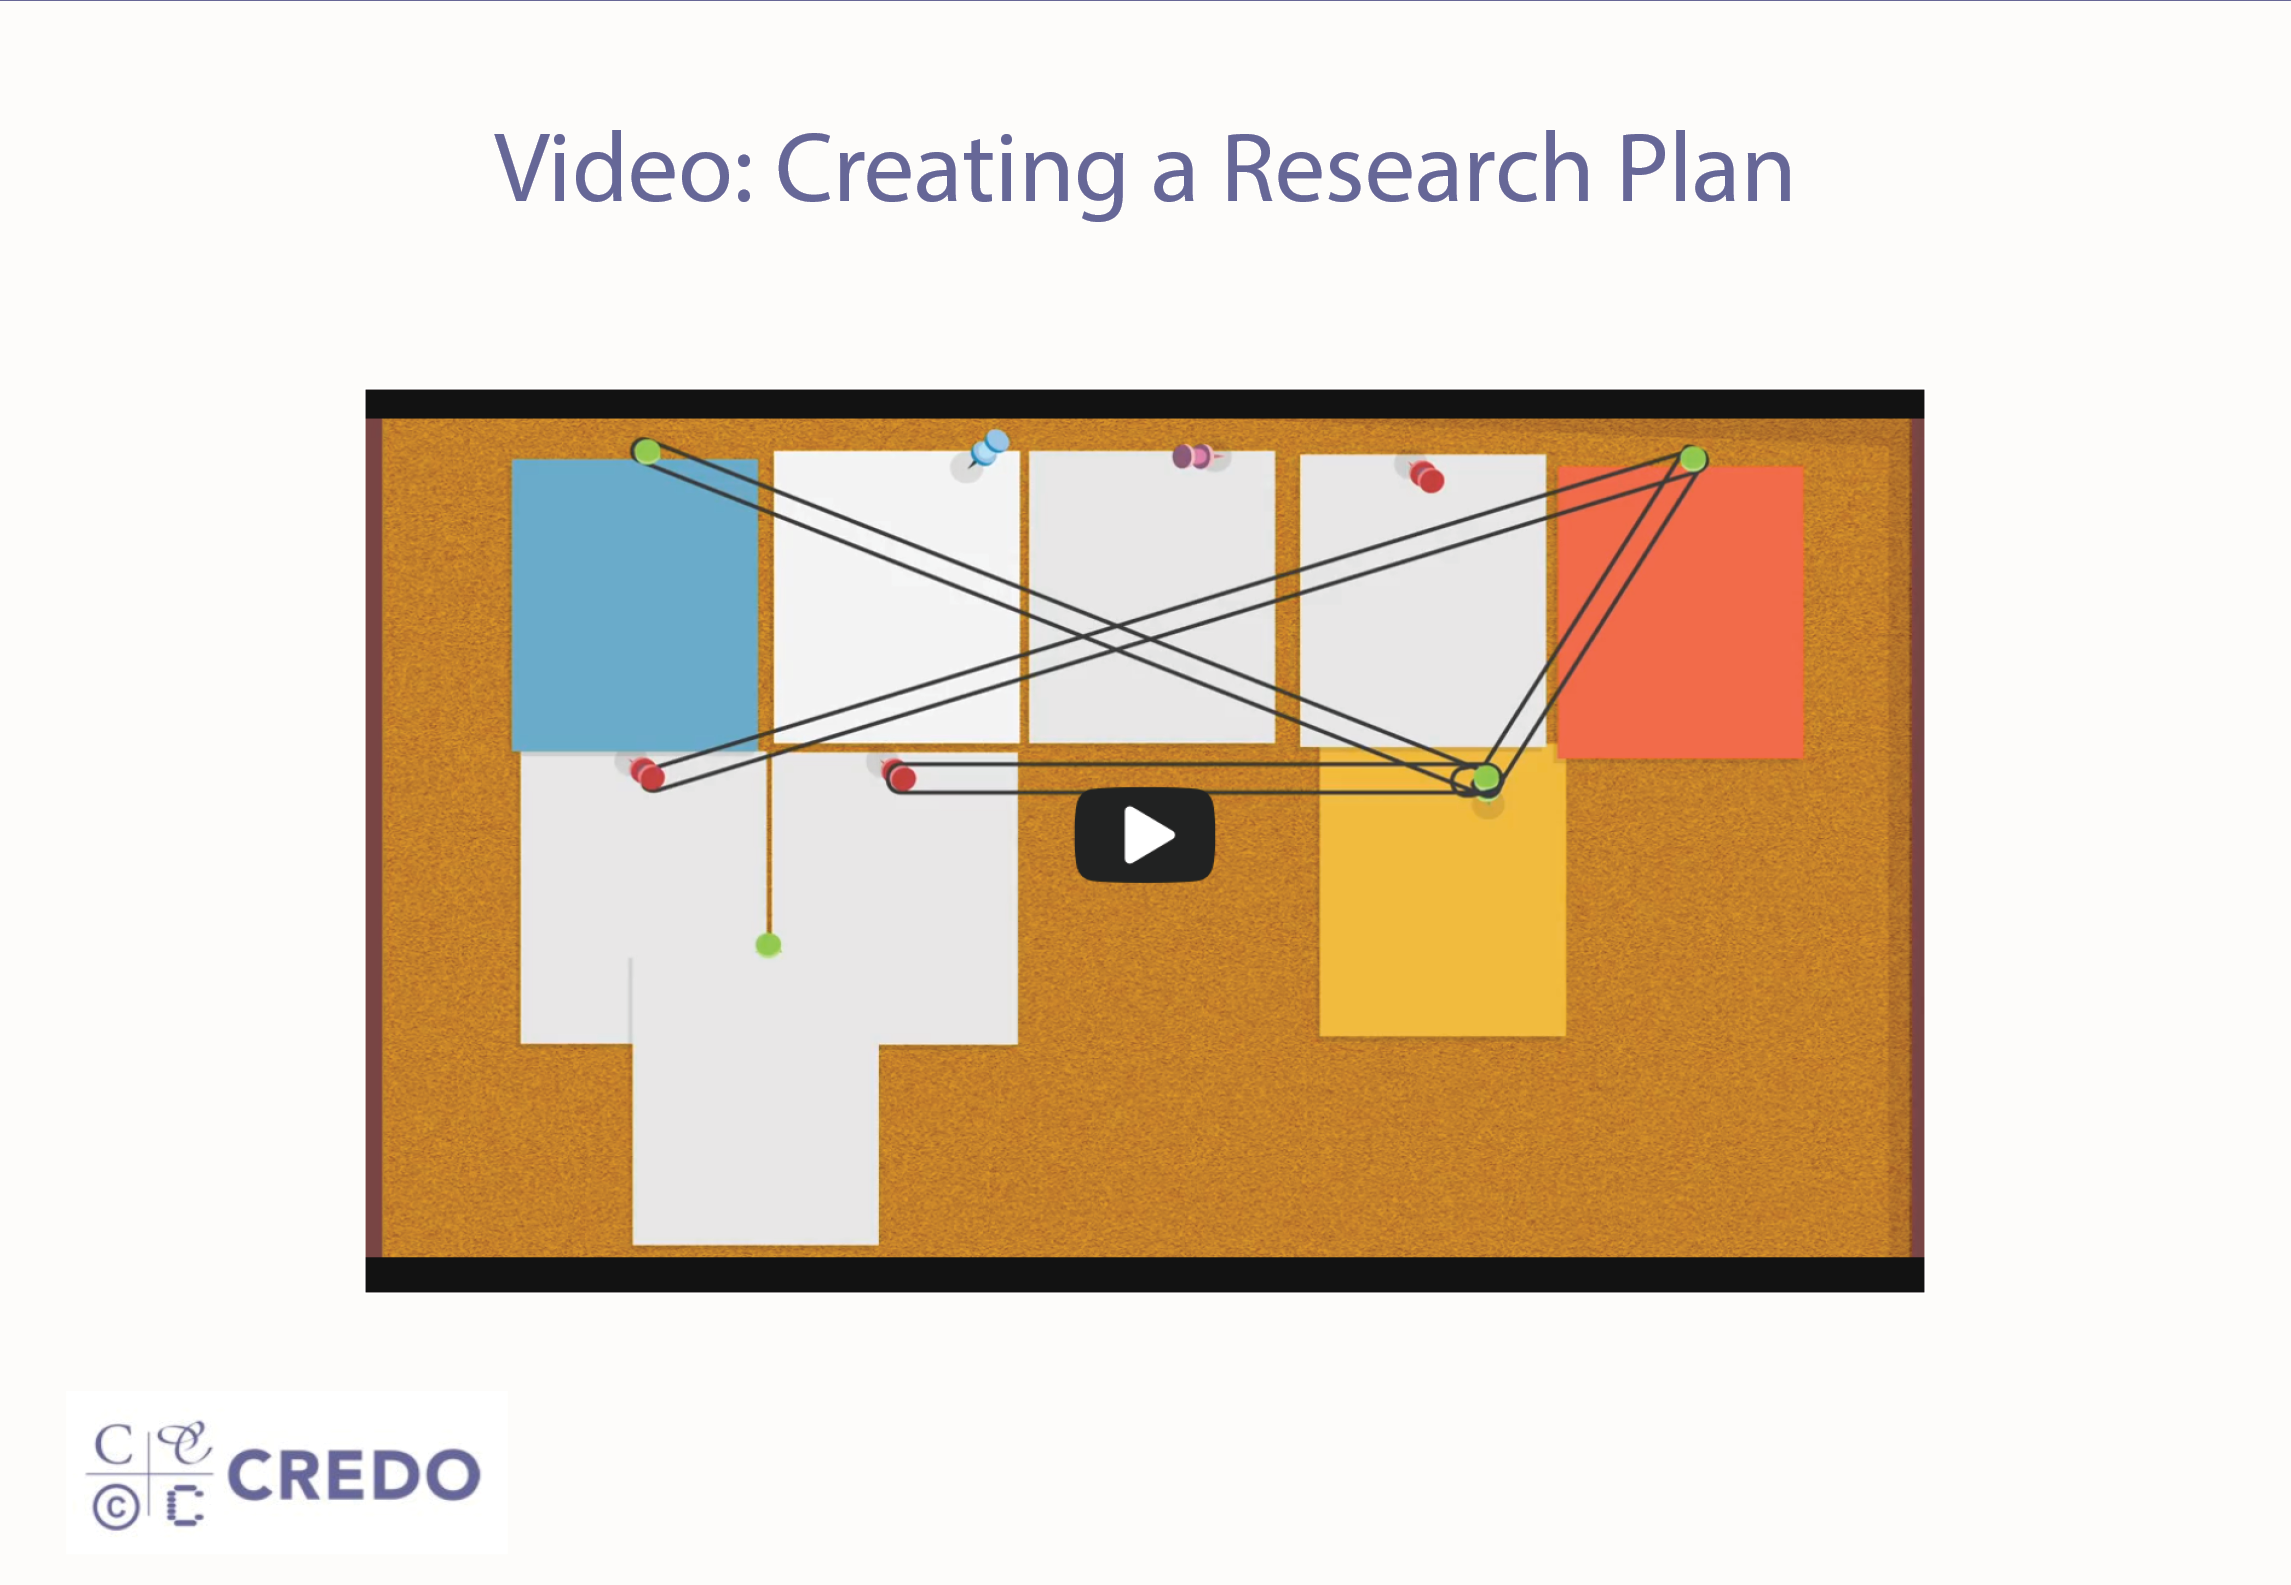 Video: Creating a Research Plan